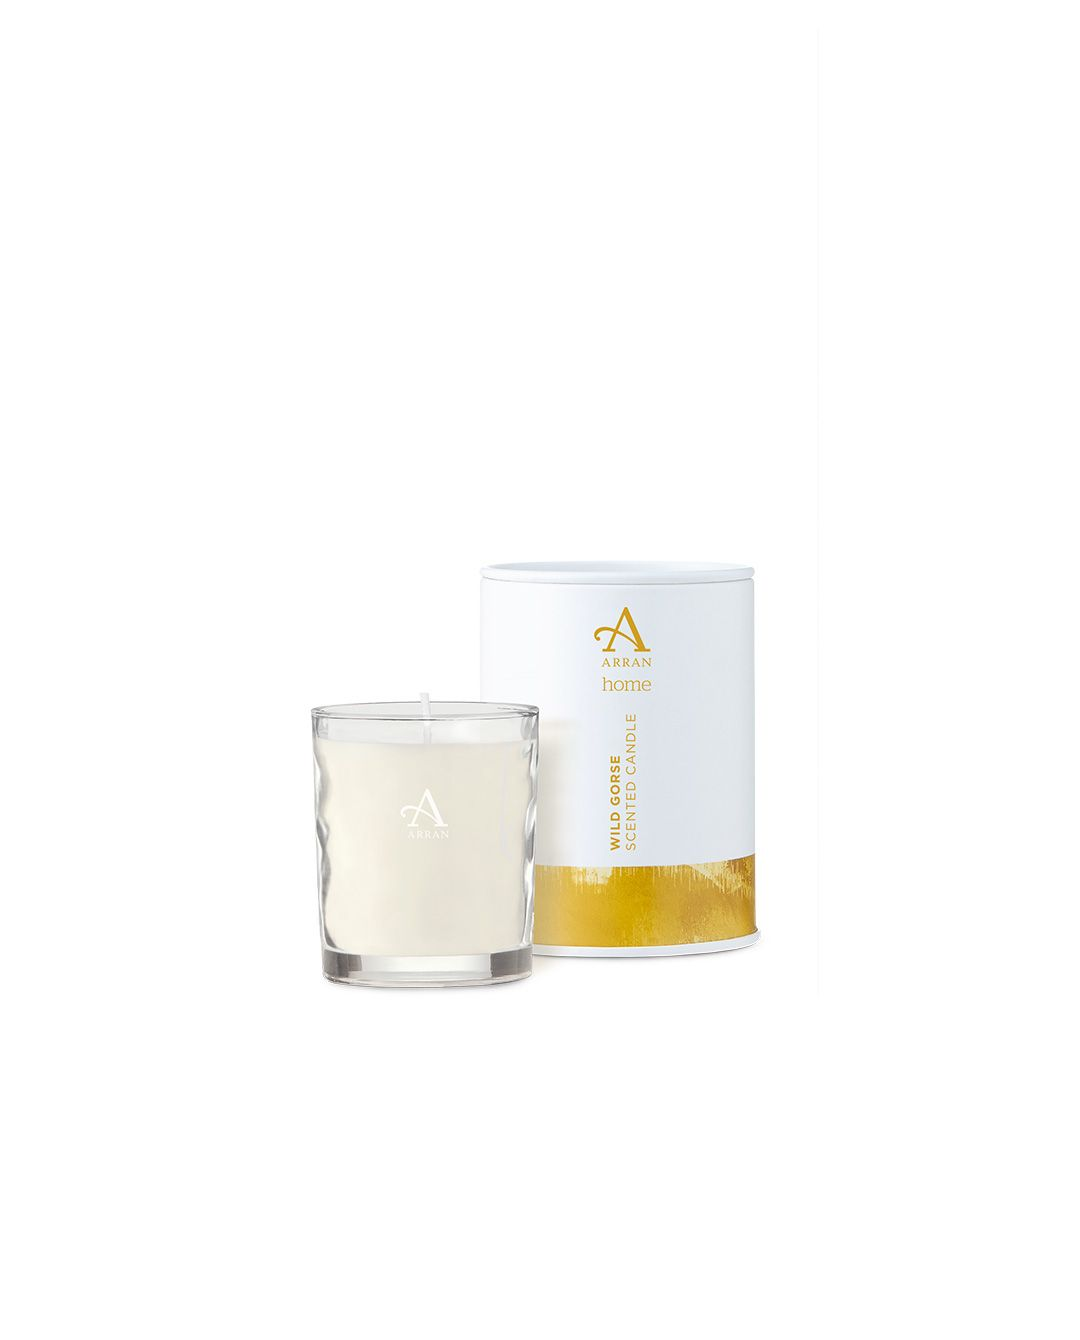 Arran Aromatics Wild Gorse Candle in Tin 8cl